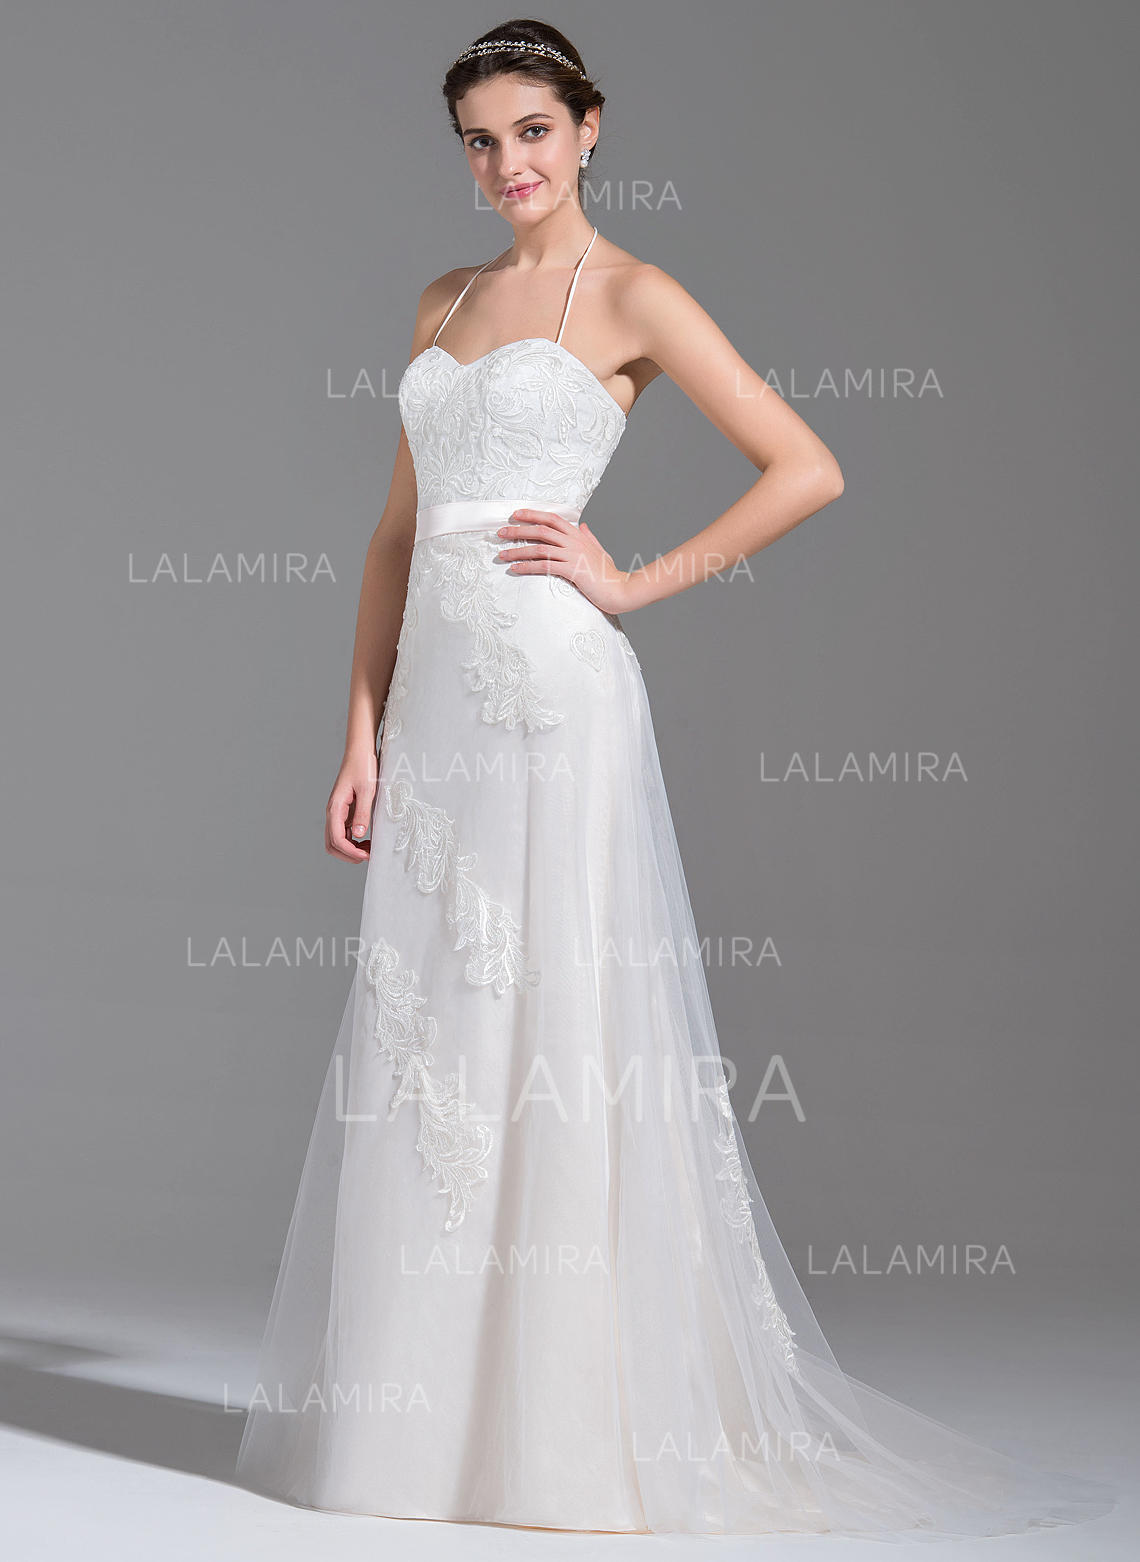 05435de4746 Halter A-Line Princess Wedding Dresses Tulle Beading Appliques Sequins  Bow(s). Loading zoom